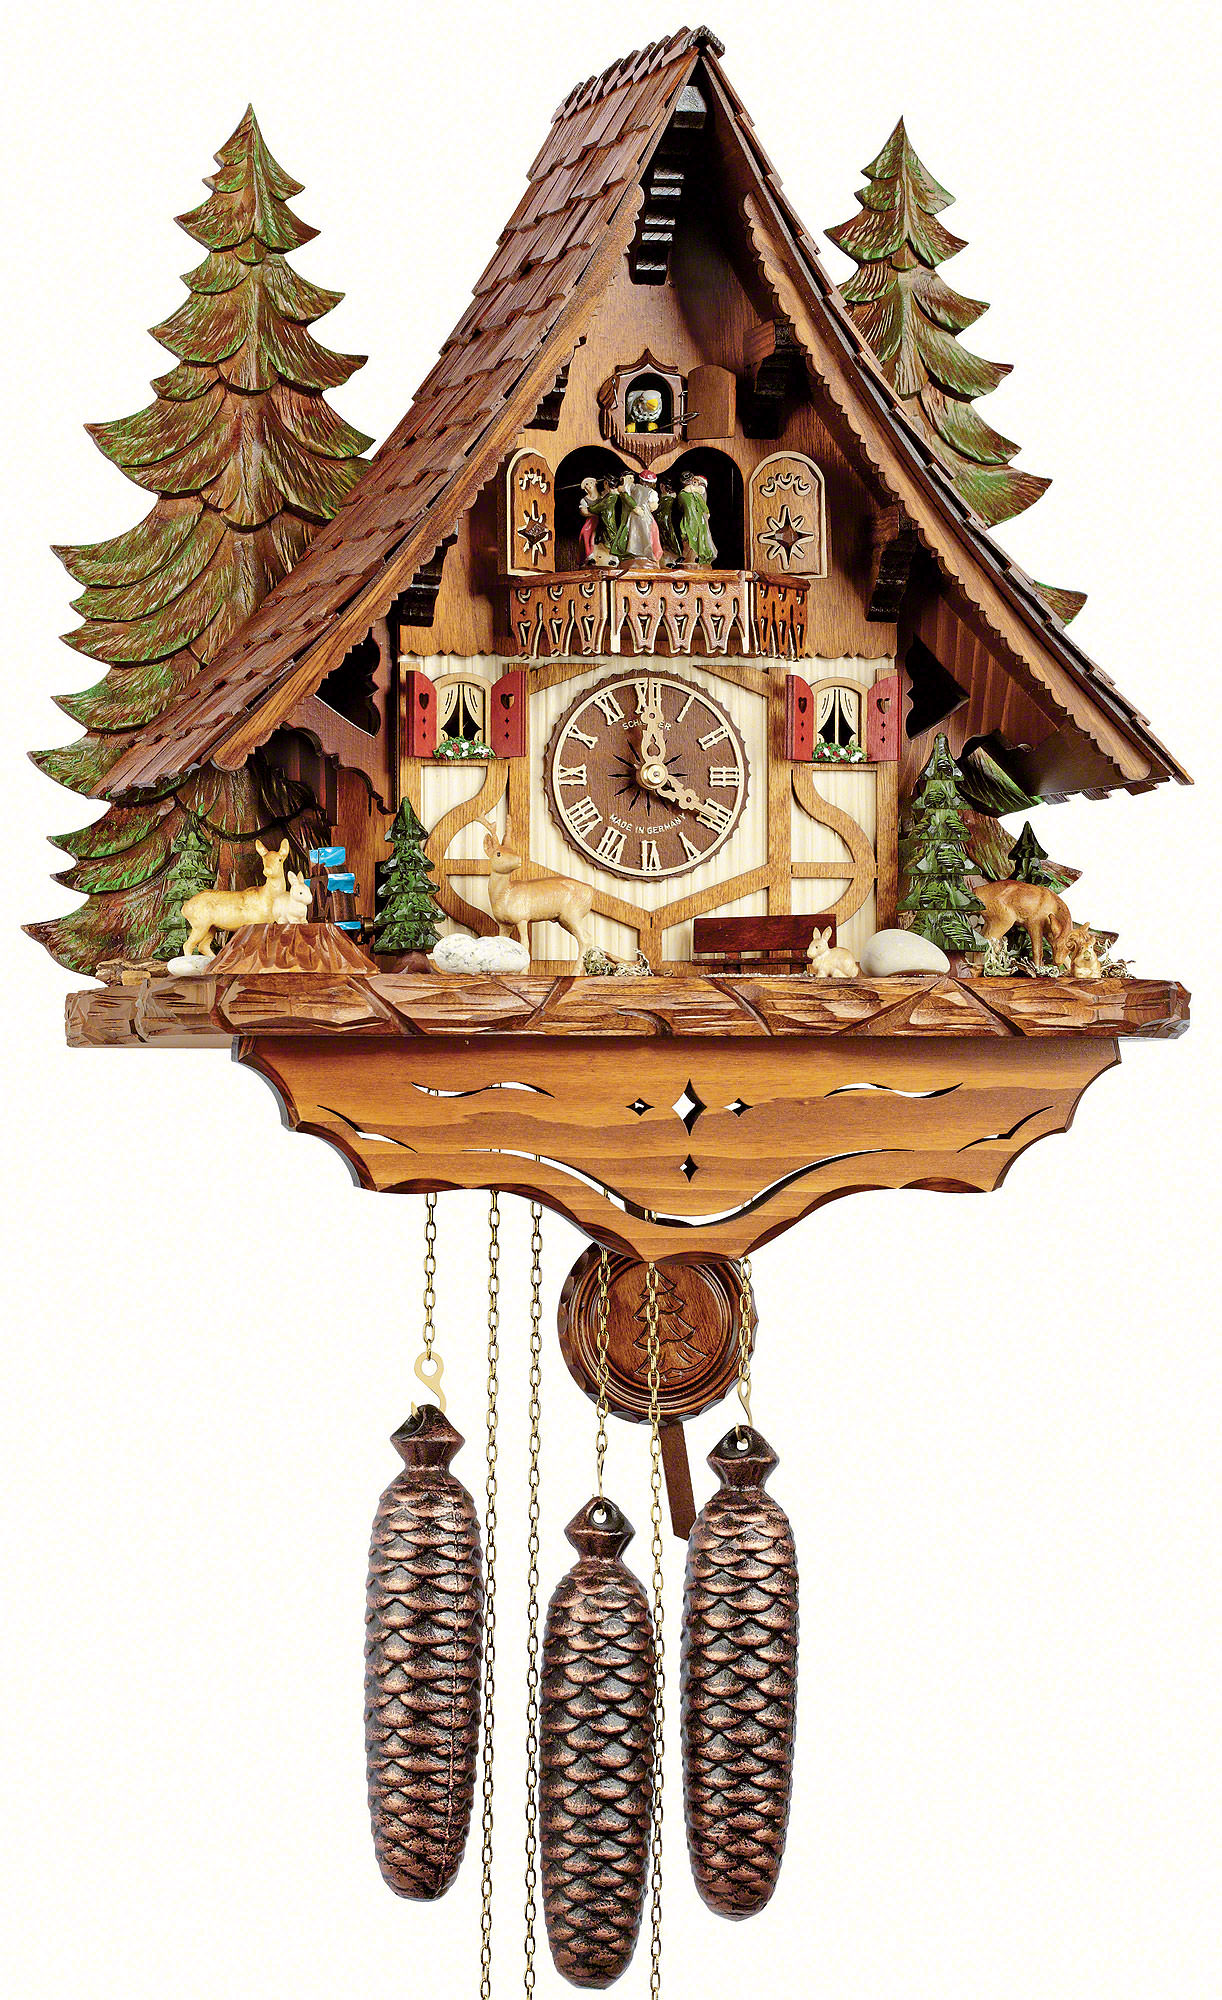 Cuckoo clock 8 day movement chalet style 45cm by anton How to make a cuckoo clock